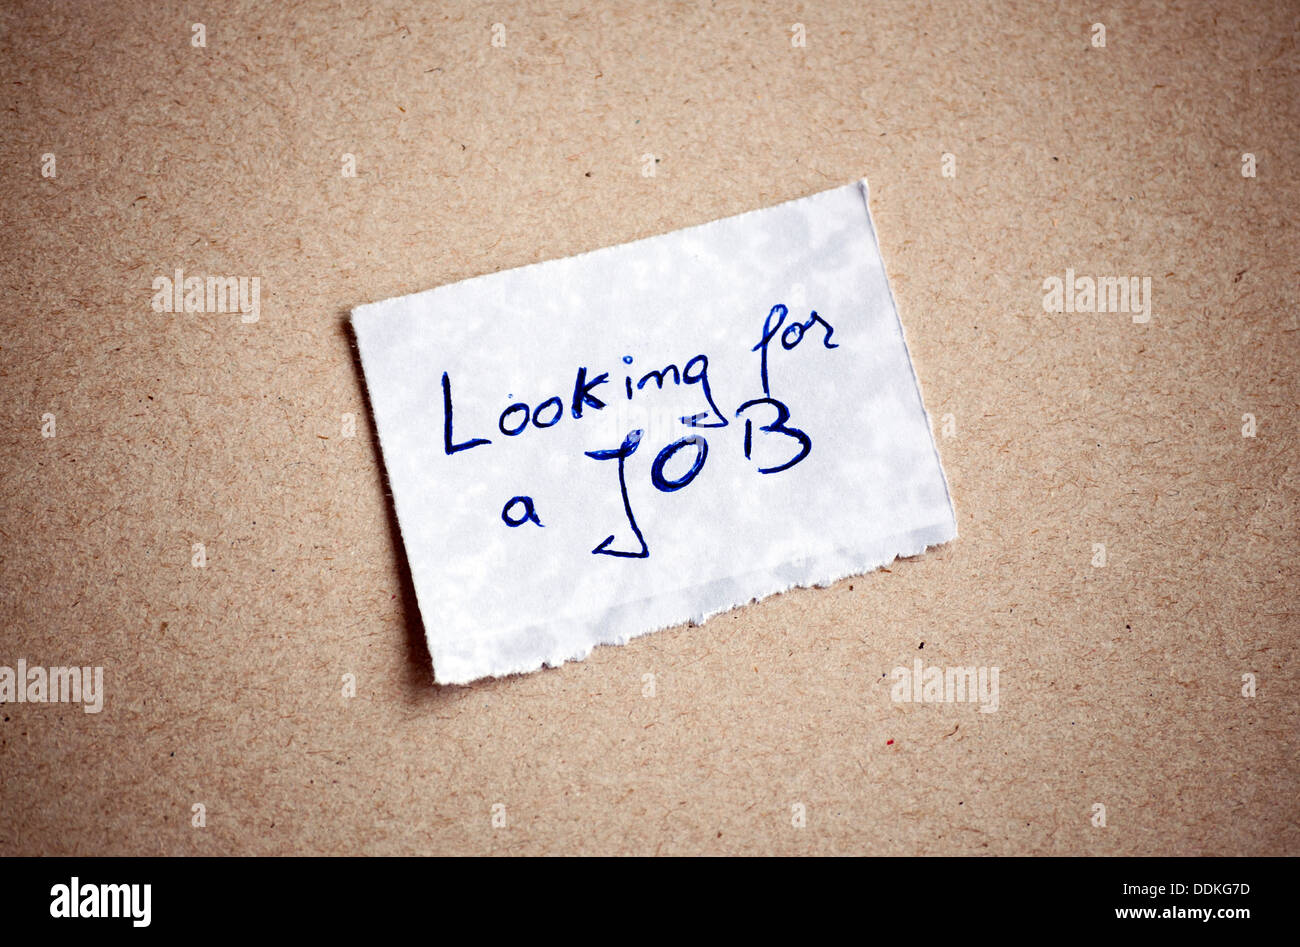 Looking for a Job message,written on piece of paper, on cardboard background. Space for your text. Stock Photo